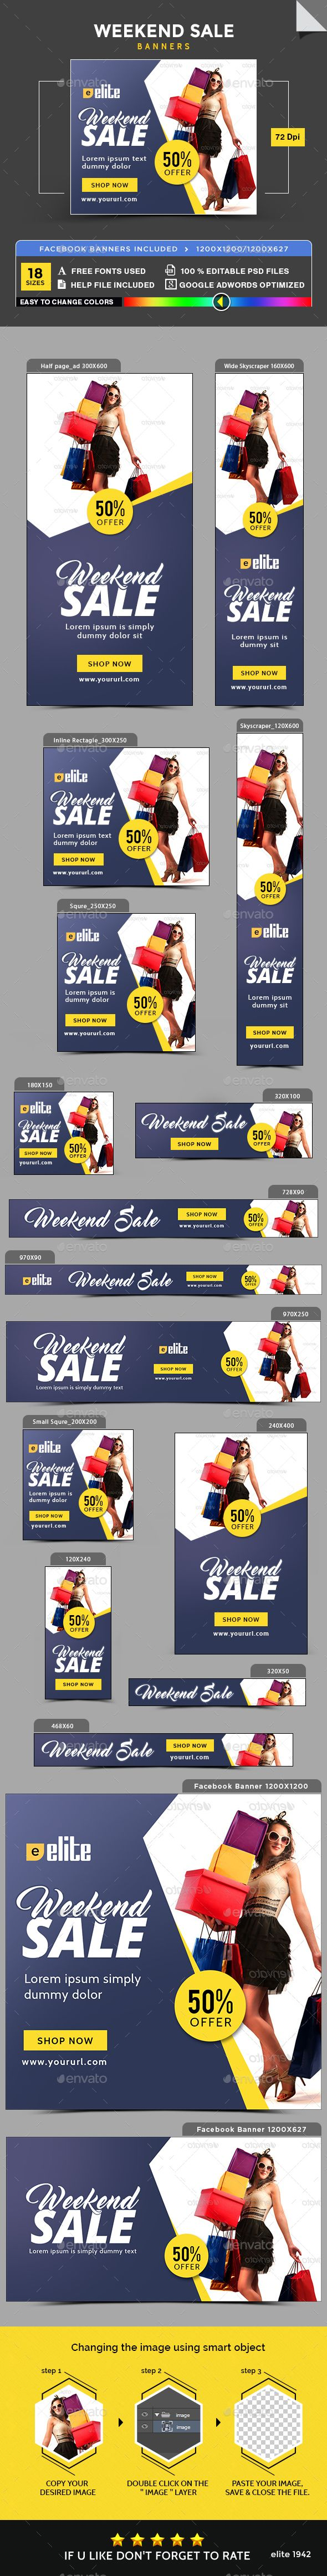 Weekend Sale Banners - Banners & Ads Web Elements Download here : https://graphicriver.net/item/weekend-sale-banners/18675483?s_rank=209&ref=Al-fatih